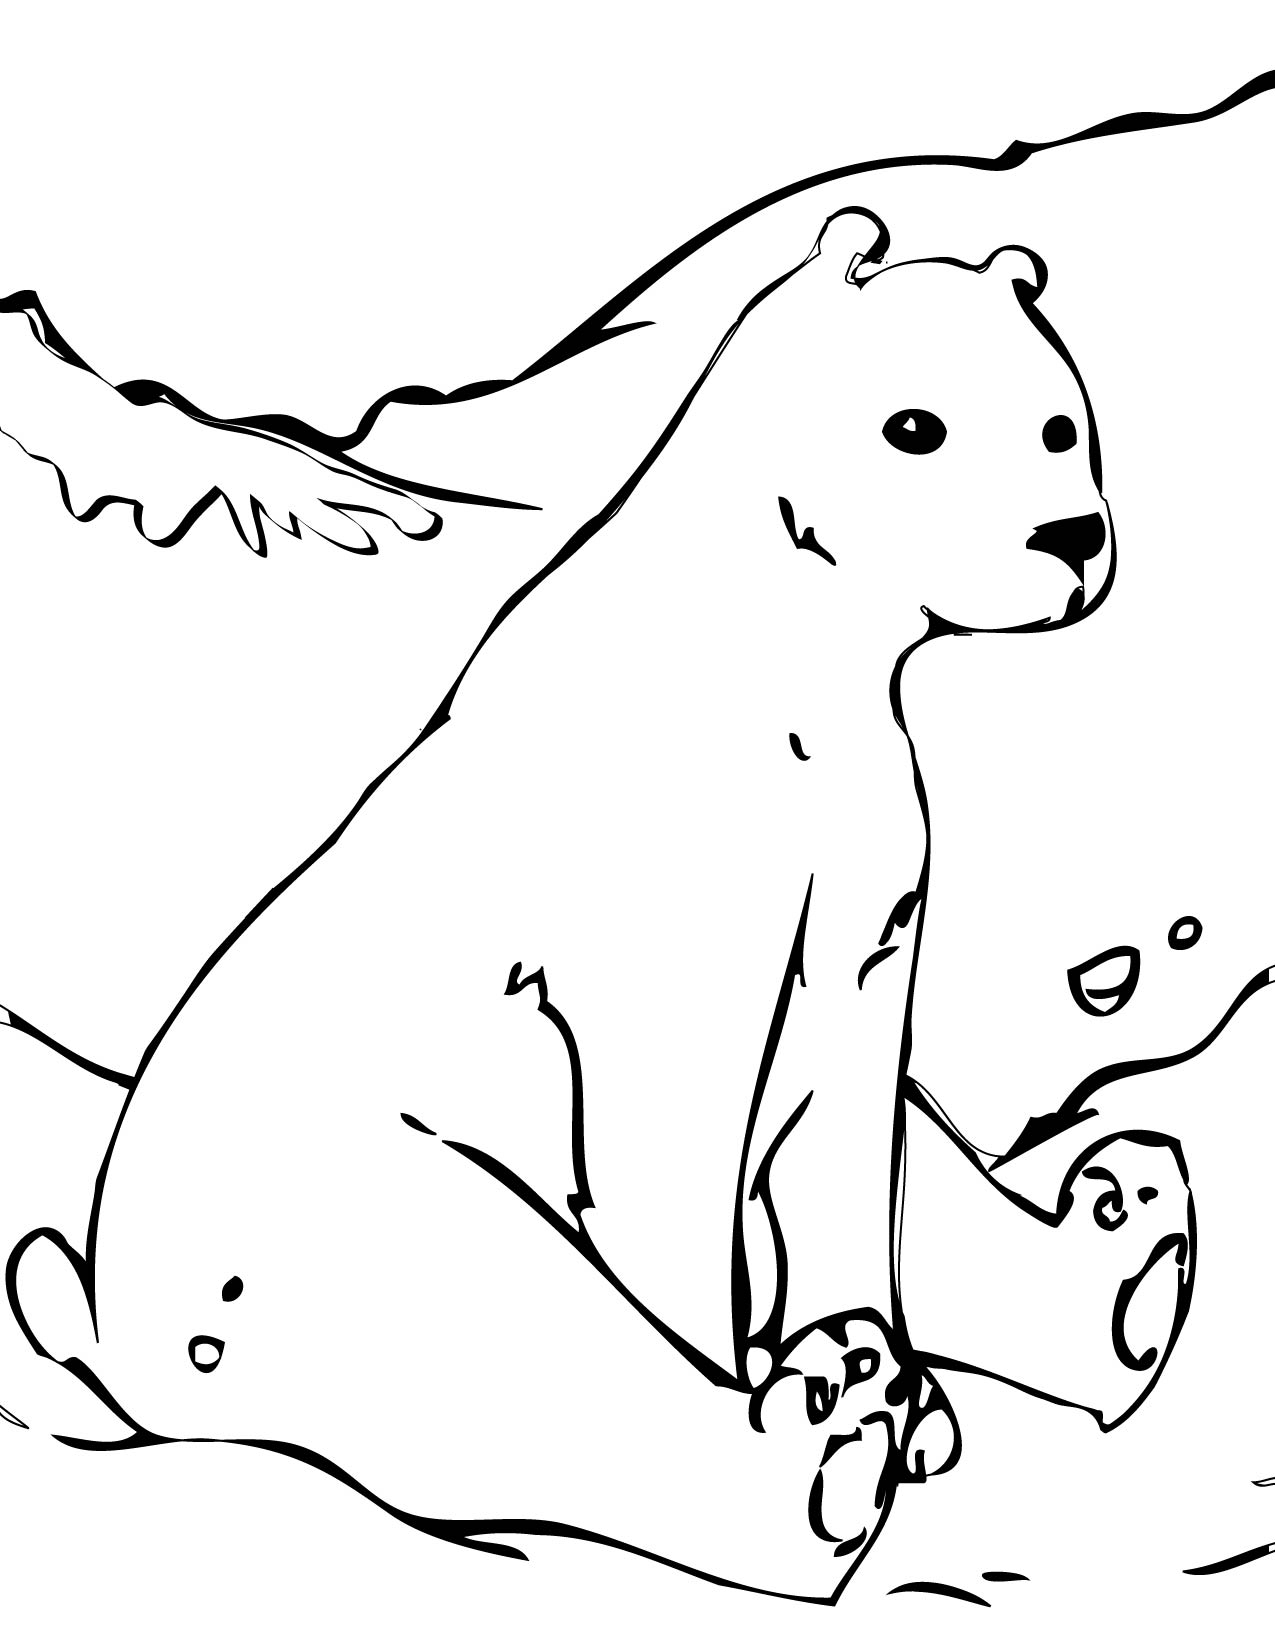 coloring pages of arctic animals - photo#17